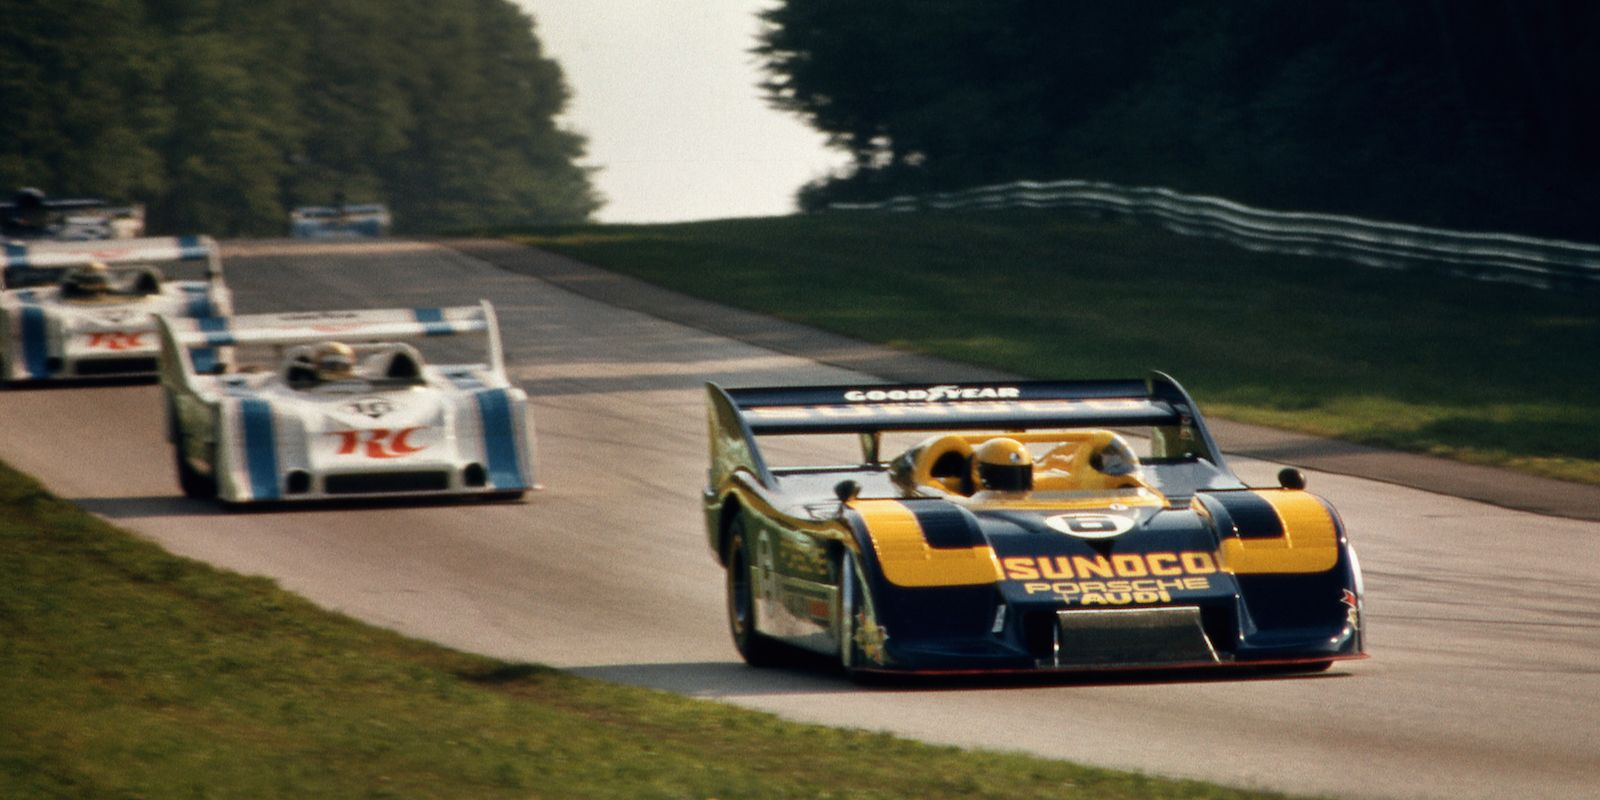 ELKHART LAKE, WI - AUGUST 26: Mark Donohue leads the field in the Porsche 917/30 003 enroute to winning the Can-Am race on August 26, 1973, at Road America near Elkhart Lake, Wisconsin. (Photo by Bob Harmeyer/Archive Photos/Getty Images)